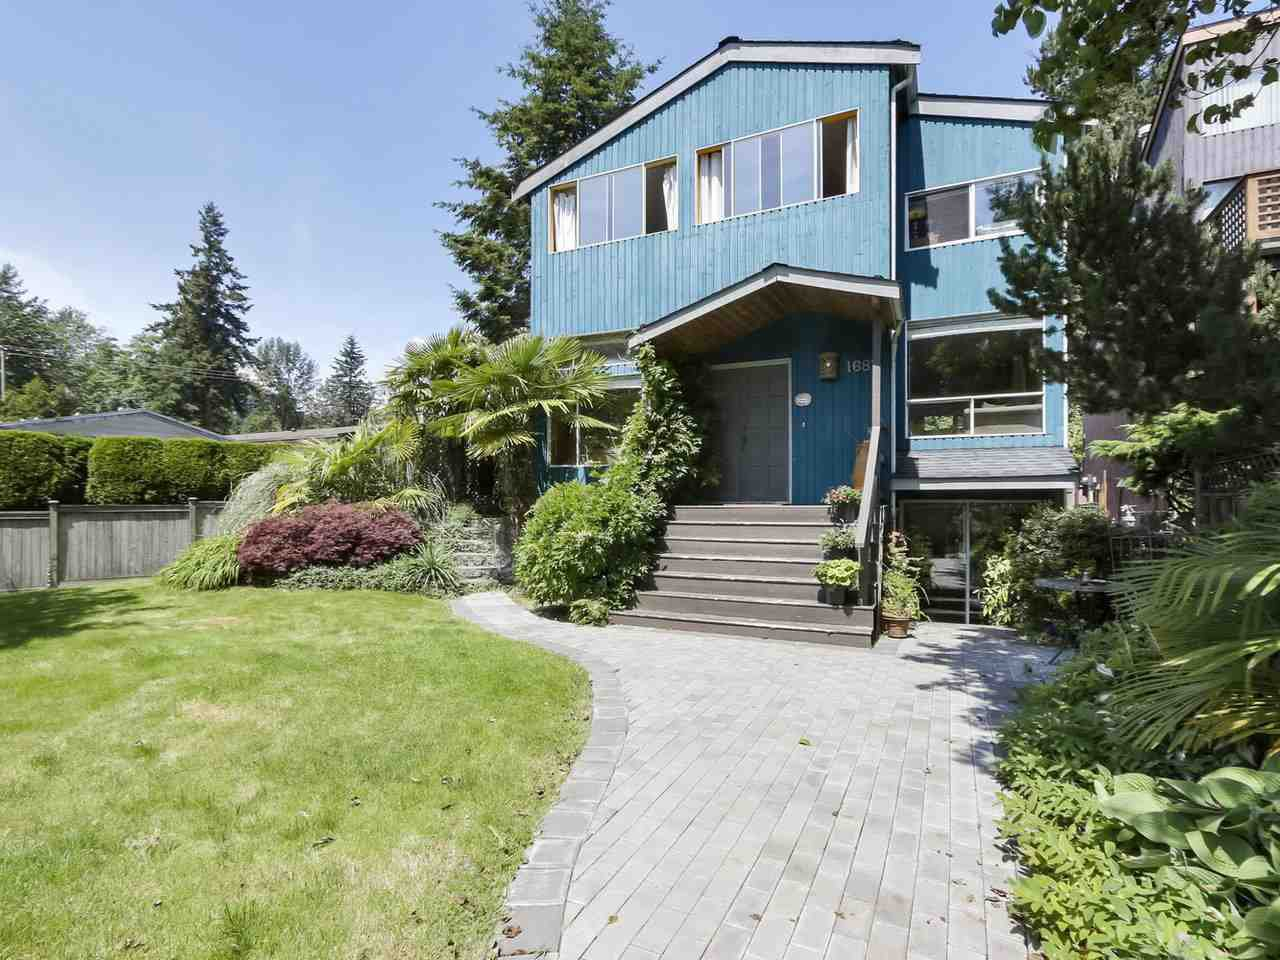 Main Photo: 1682 W 21ST Street in North Vancouver: Pemberton NV House for sale : MLS®# R2469872